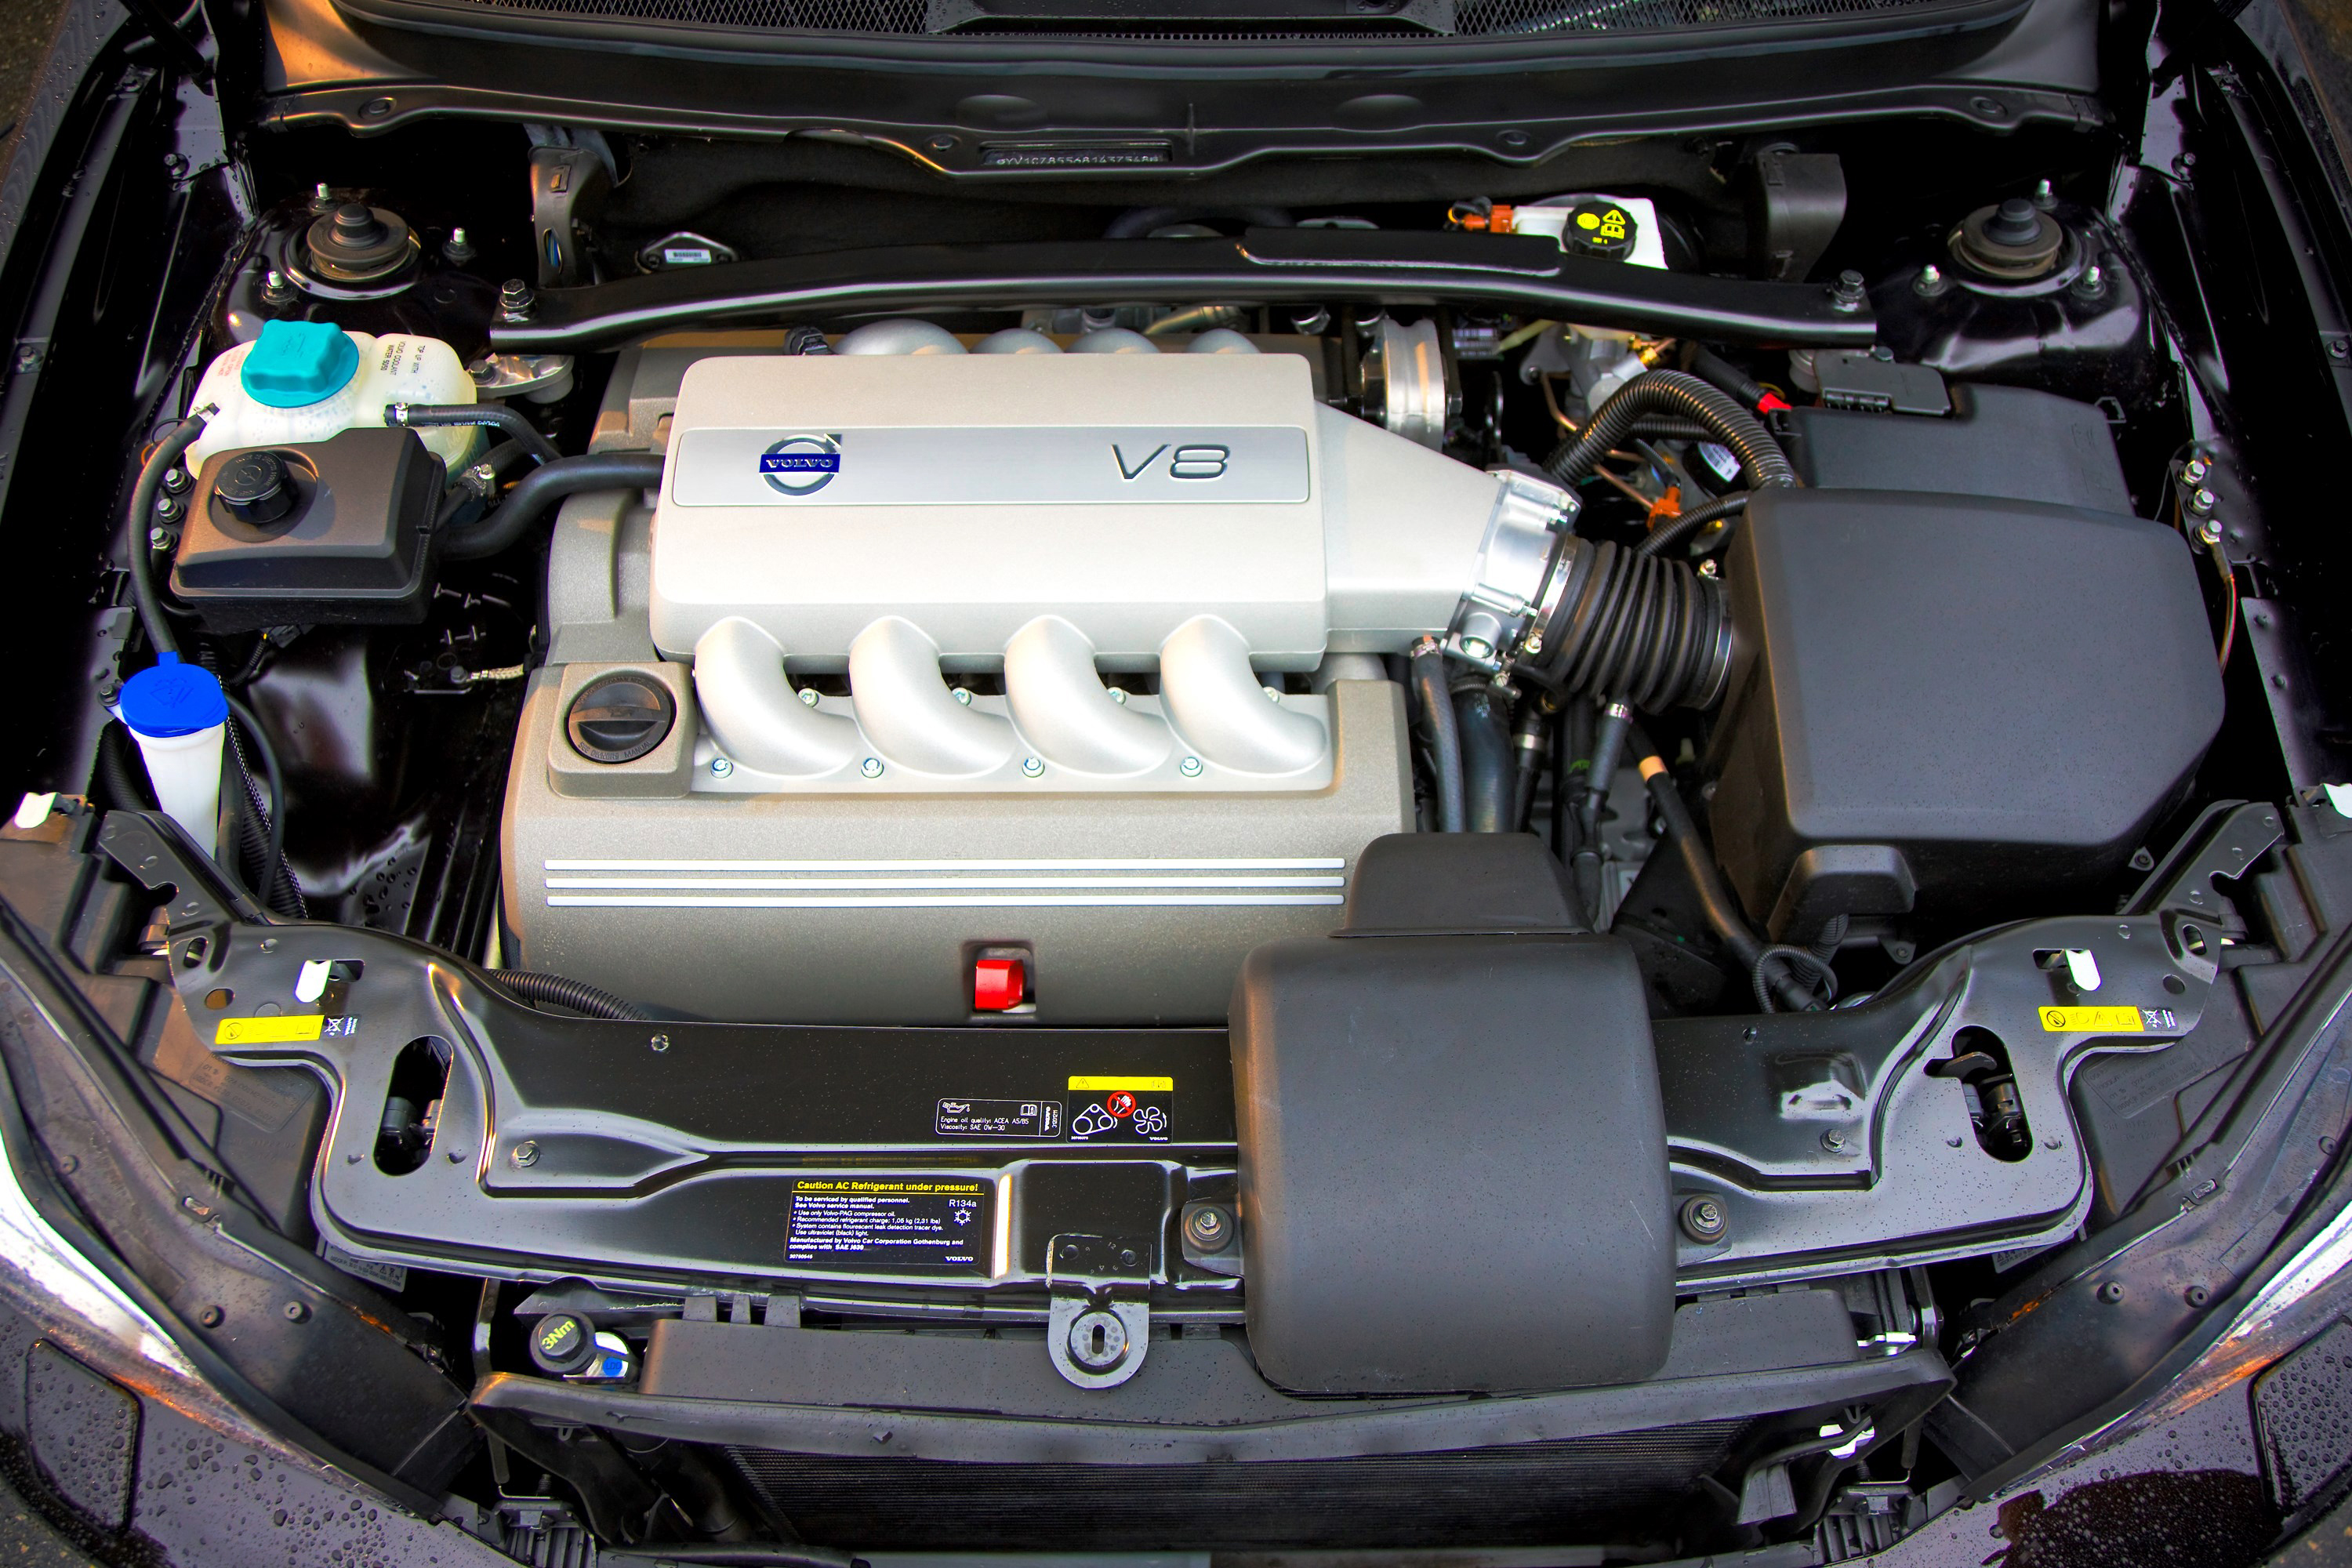 Volvo S80 Headlight Wiring Diagram As Well As Car Radiator Electric